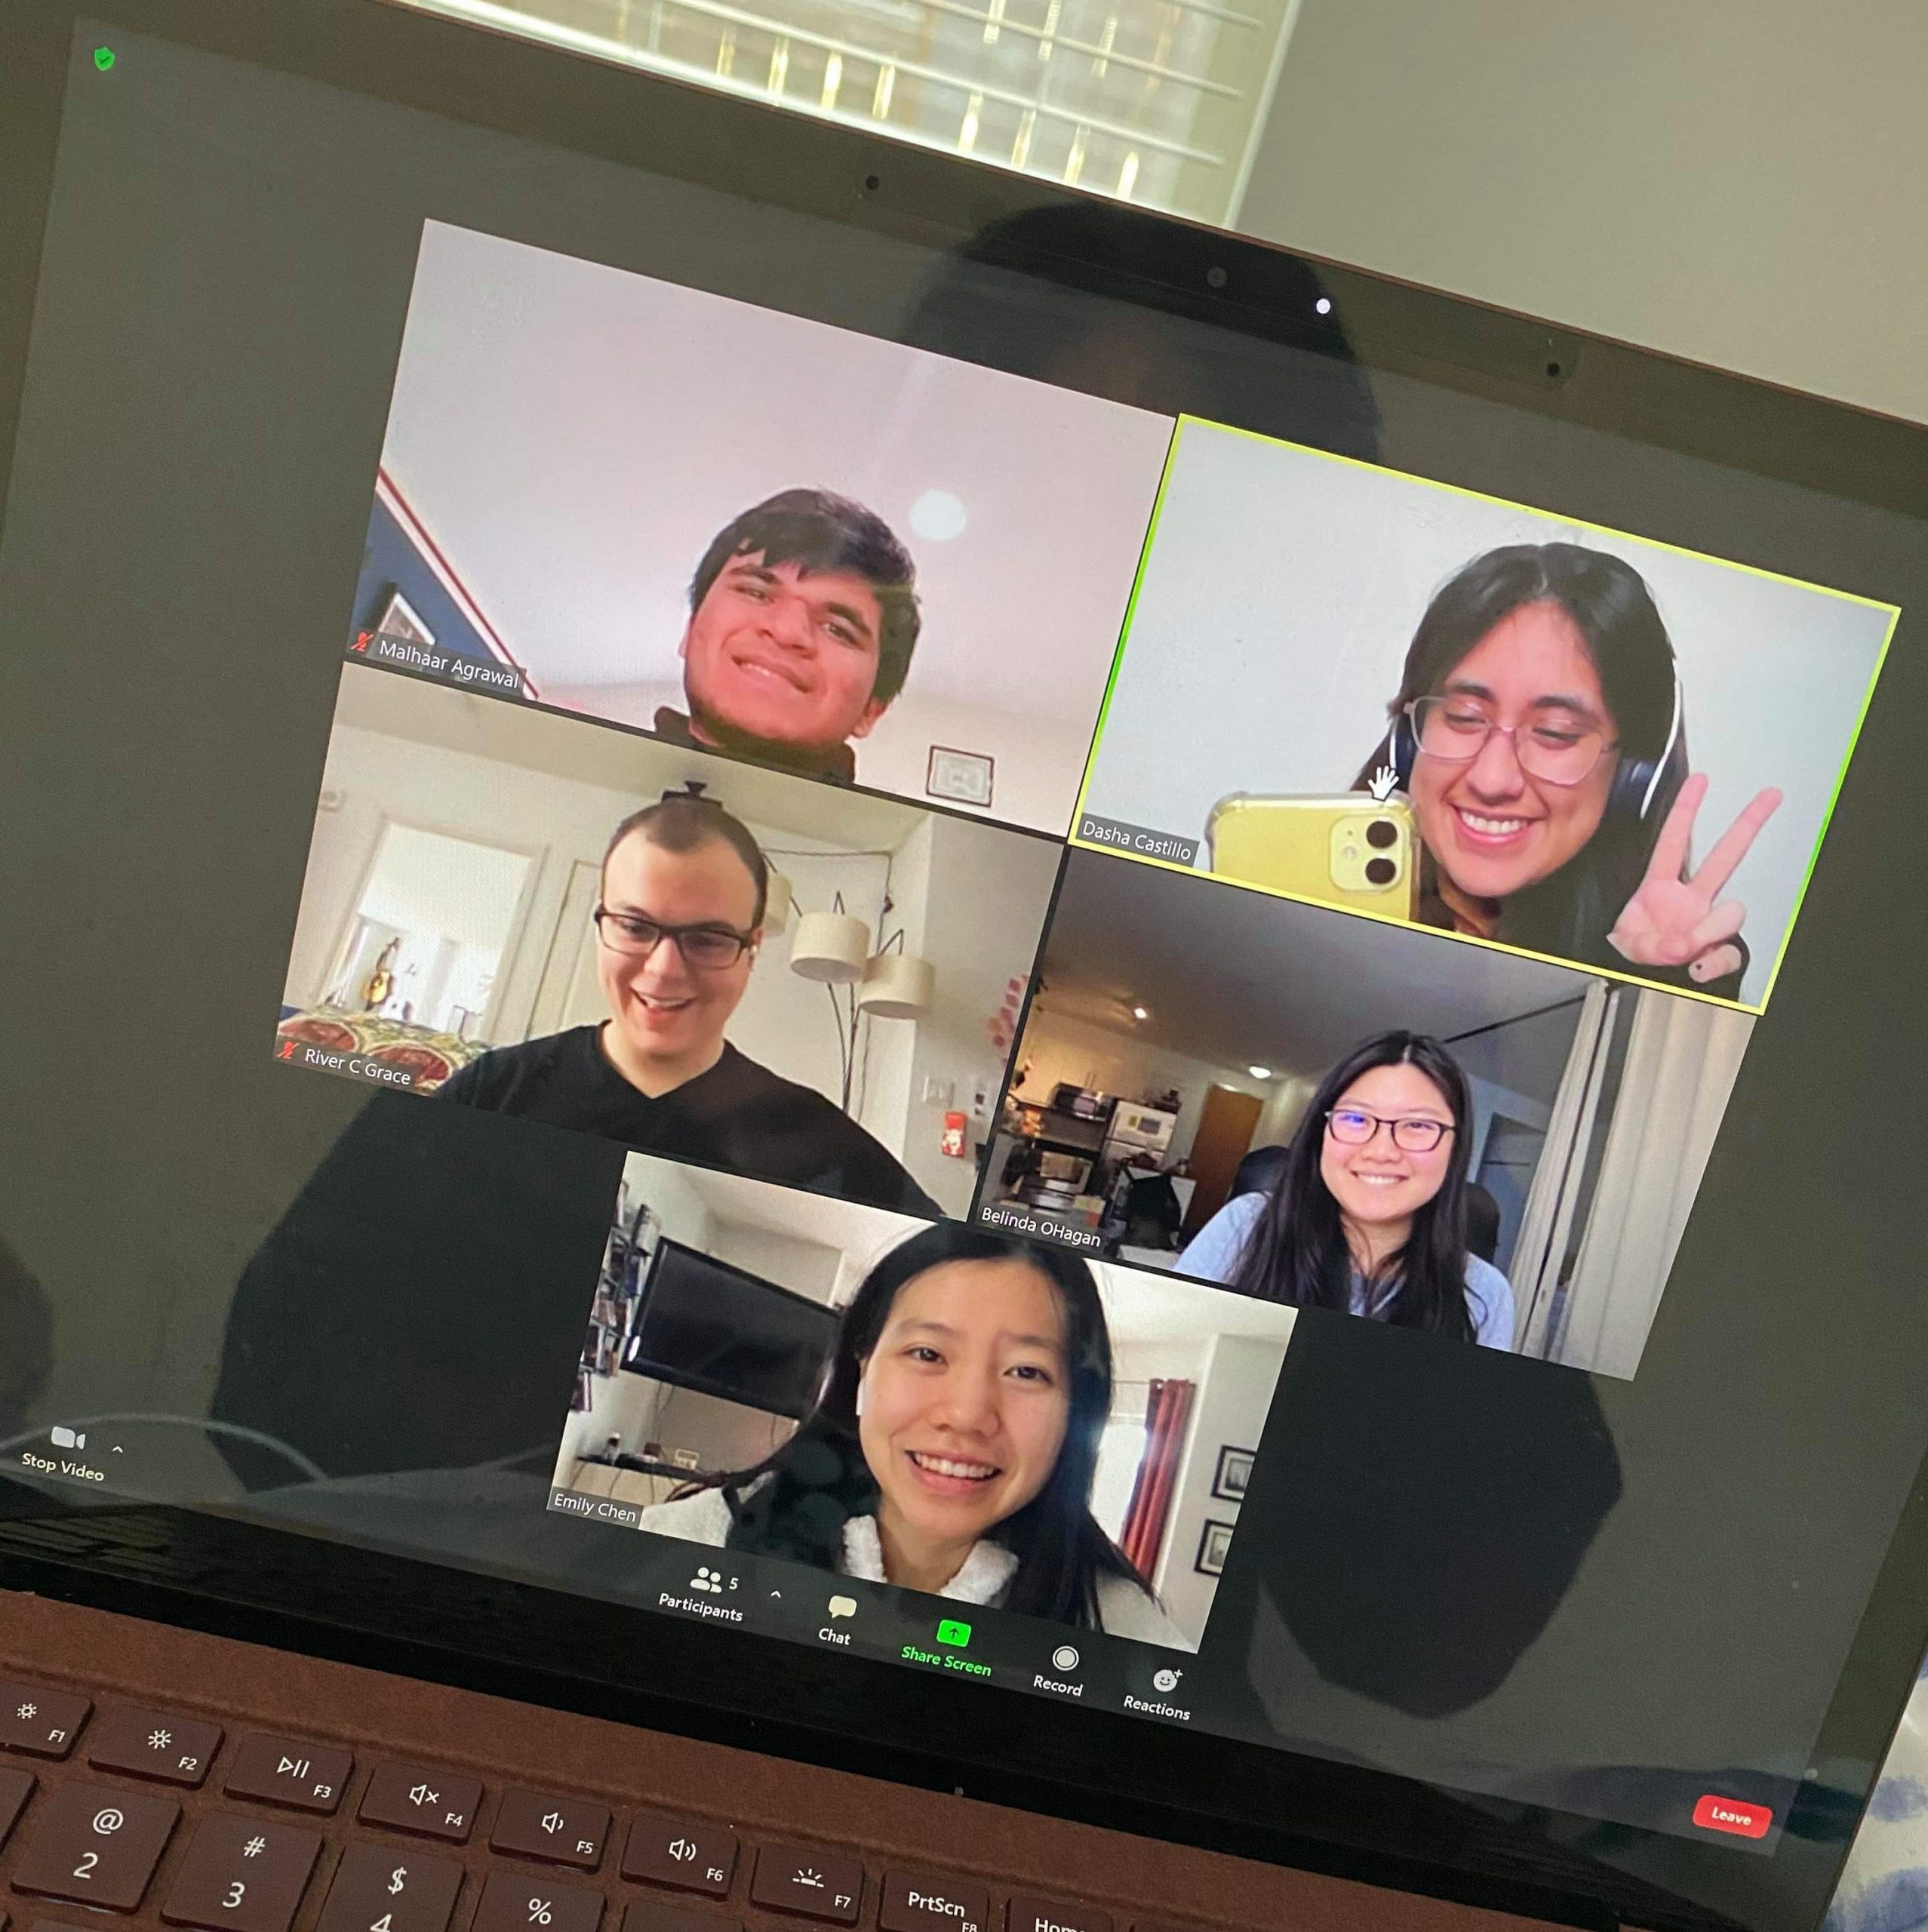 A photo of a laptop screen picturing a zoom call with 5 people, all posing for the photo.